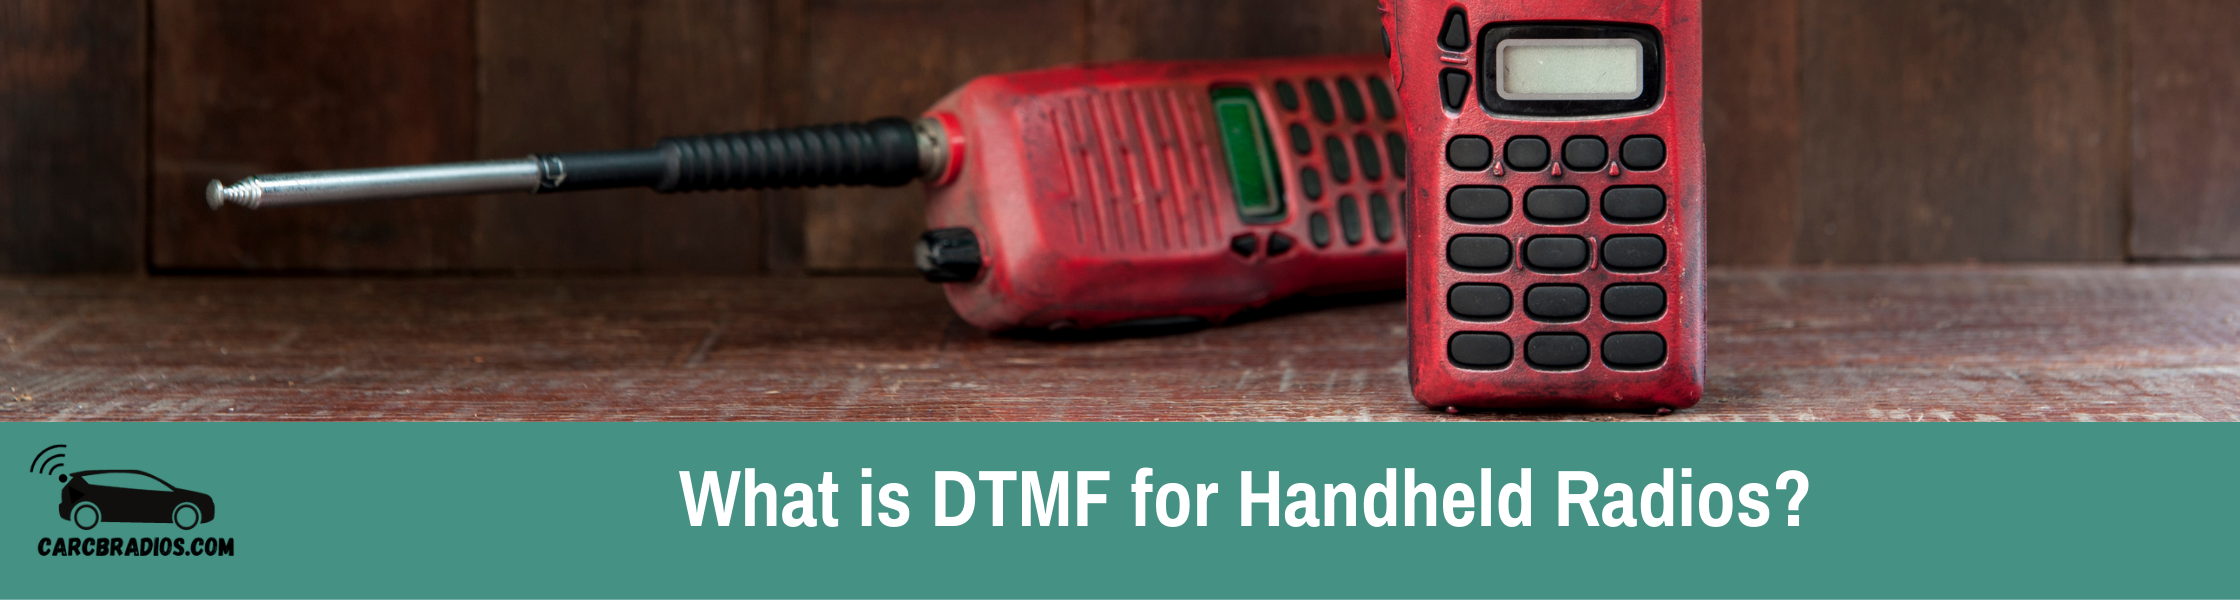 What is DTMF for Handheld Radios?: DTMF for handheld radios are tones on radios that are frequently utilized to transmit instructions via radio waves, such as repeater control, autopatch access, and IRLP access. DTMF can also be used to call or notify another station on a selective basis.